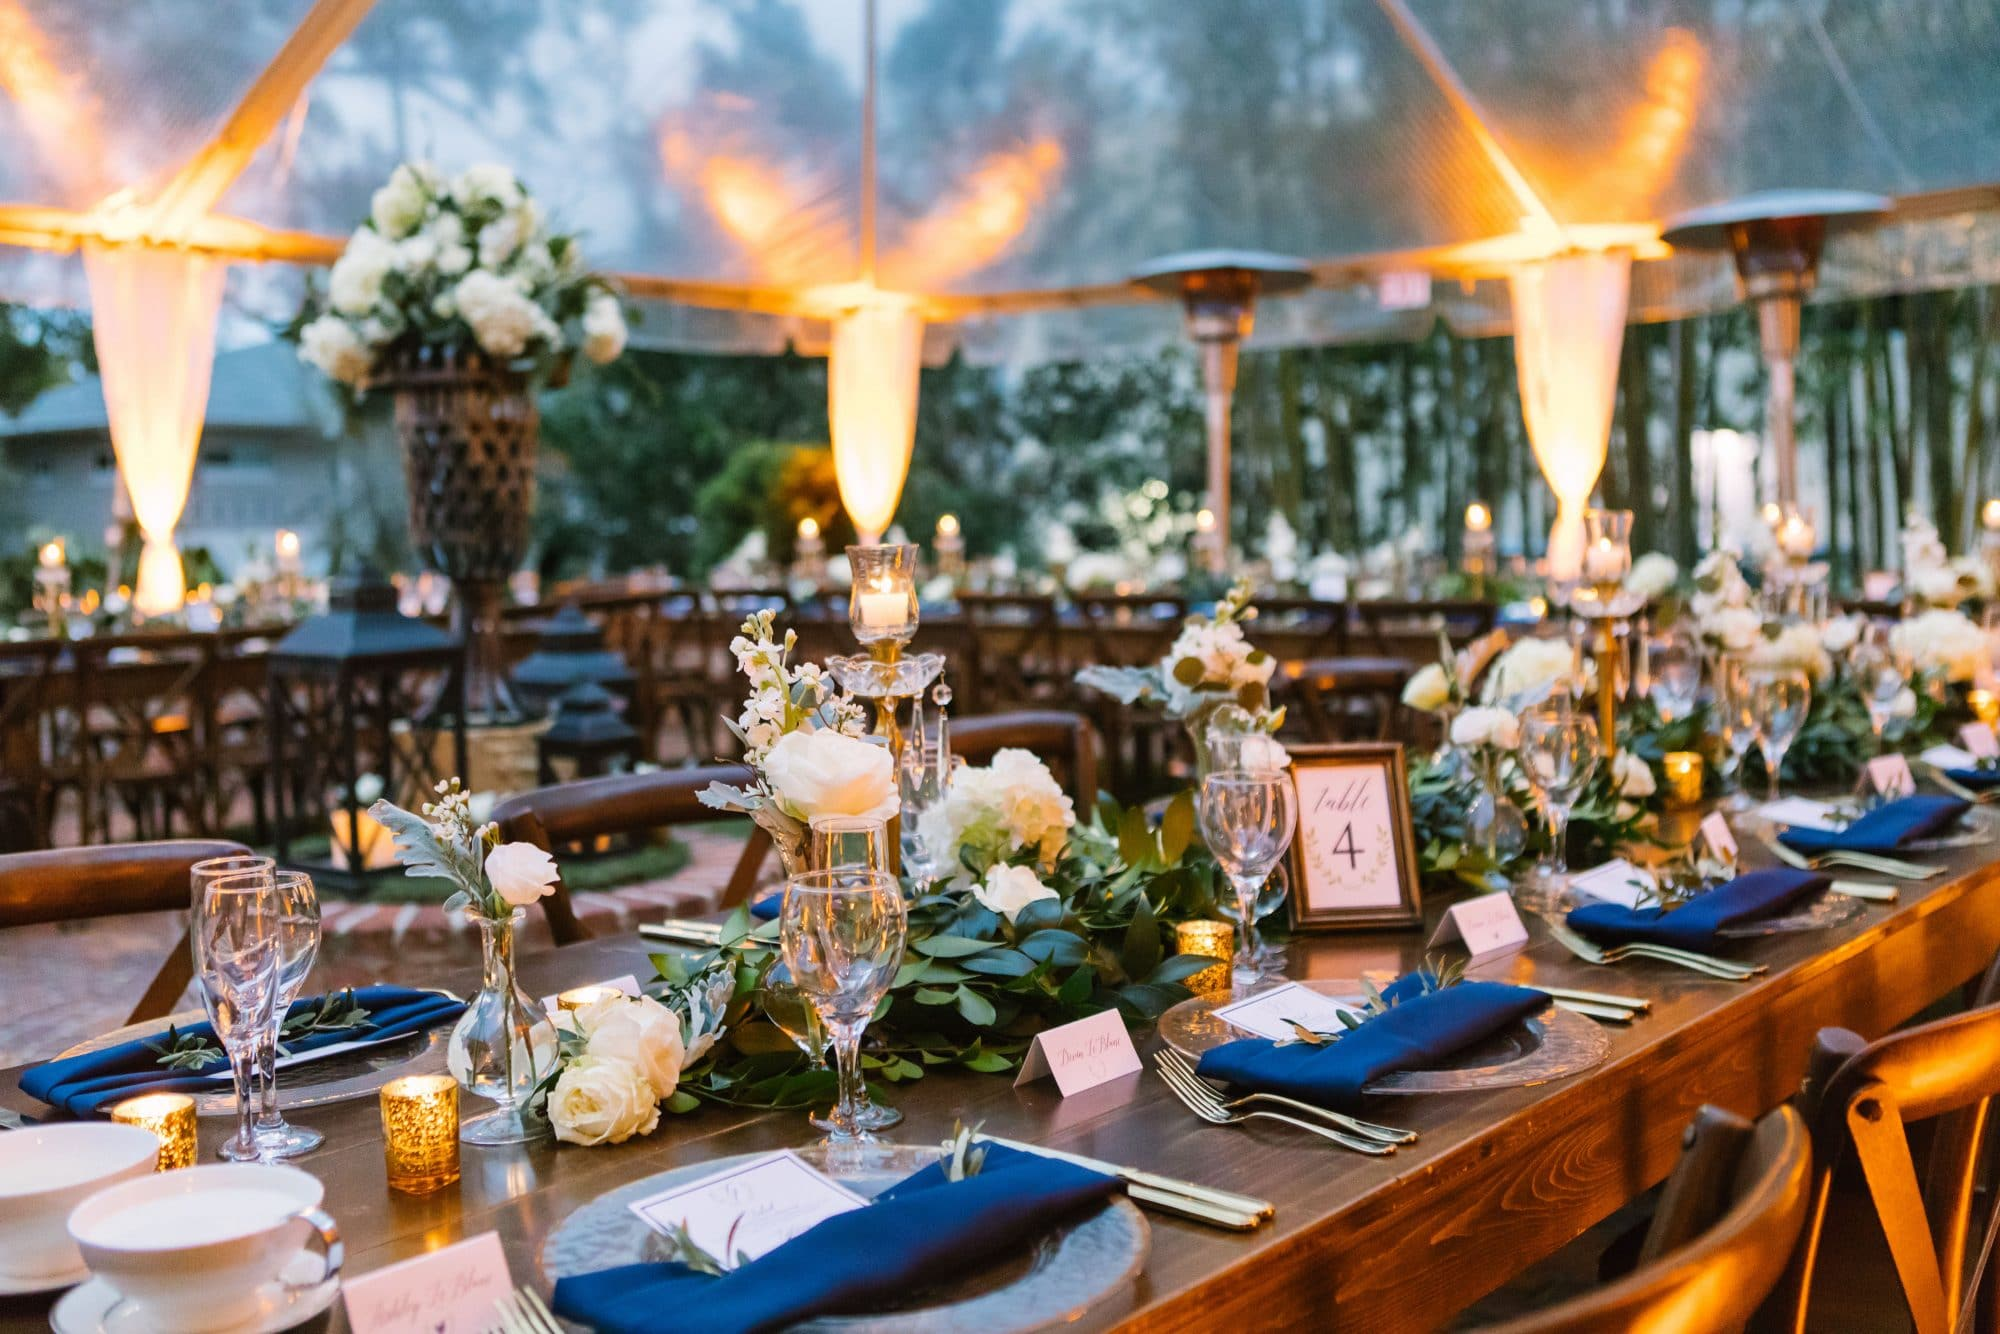 KMD Creations Photography and Film - wedding reception tables with fiery uplighting under transparent event tent